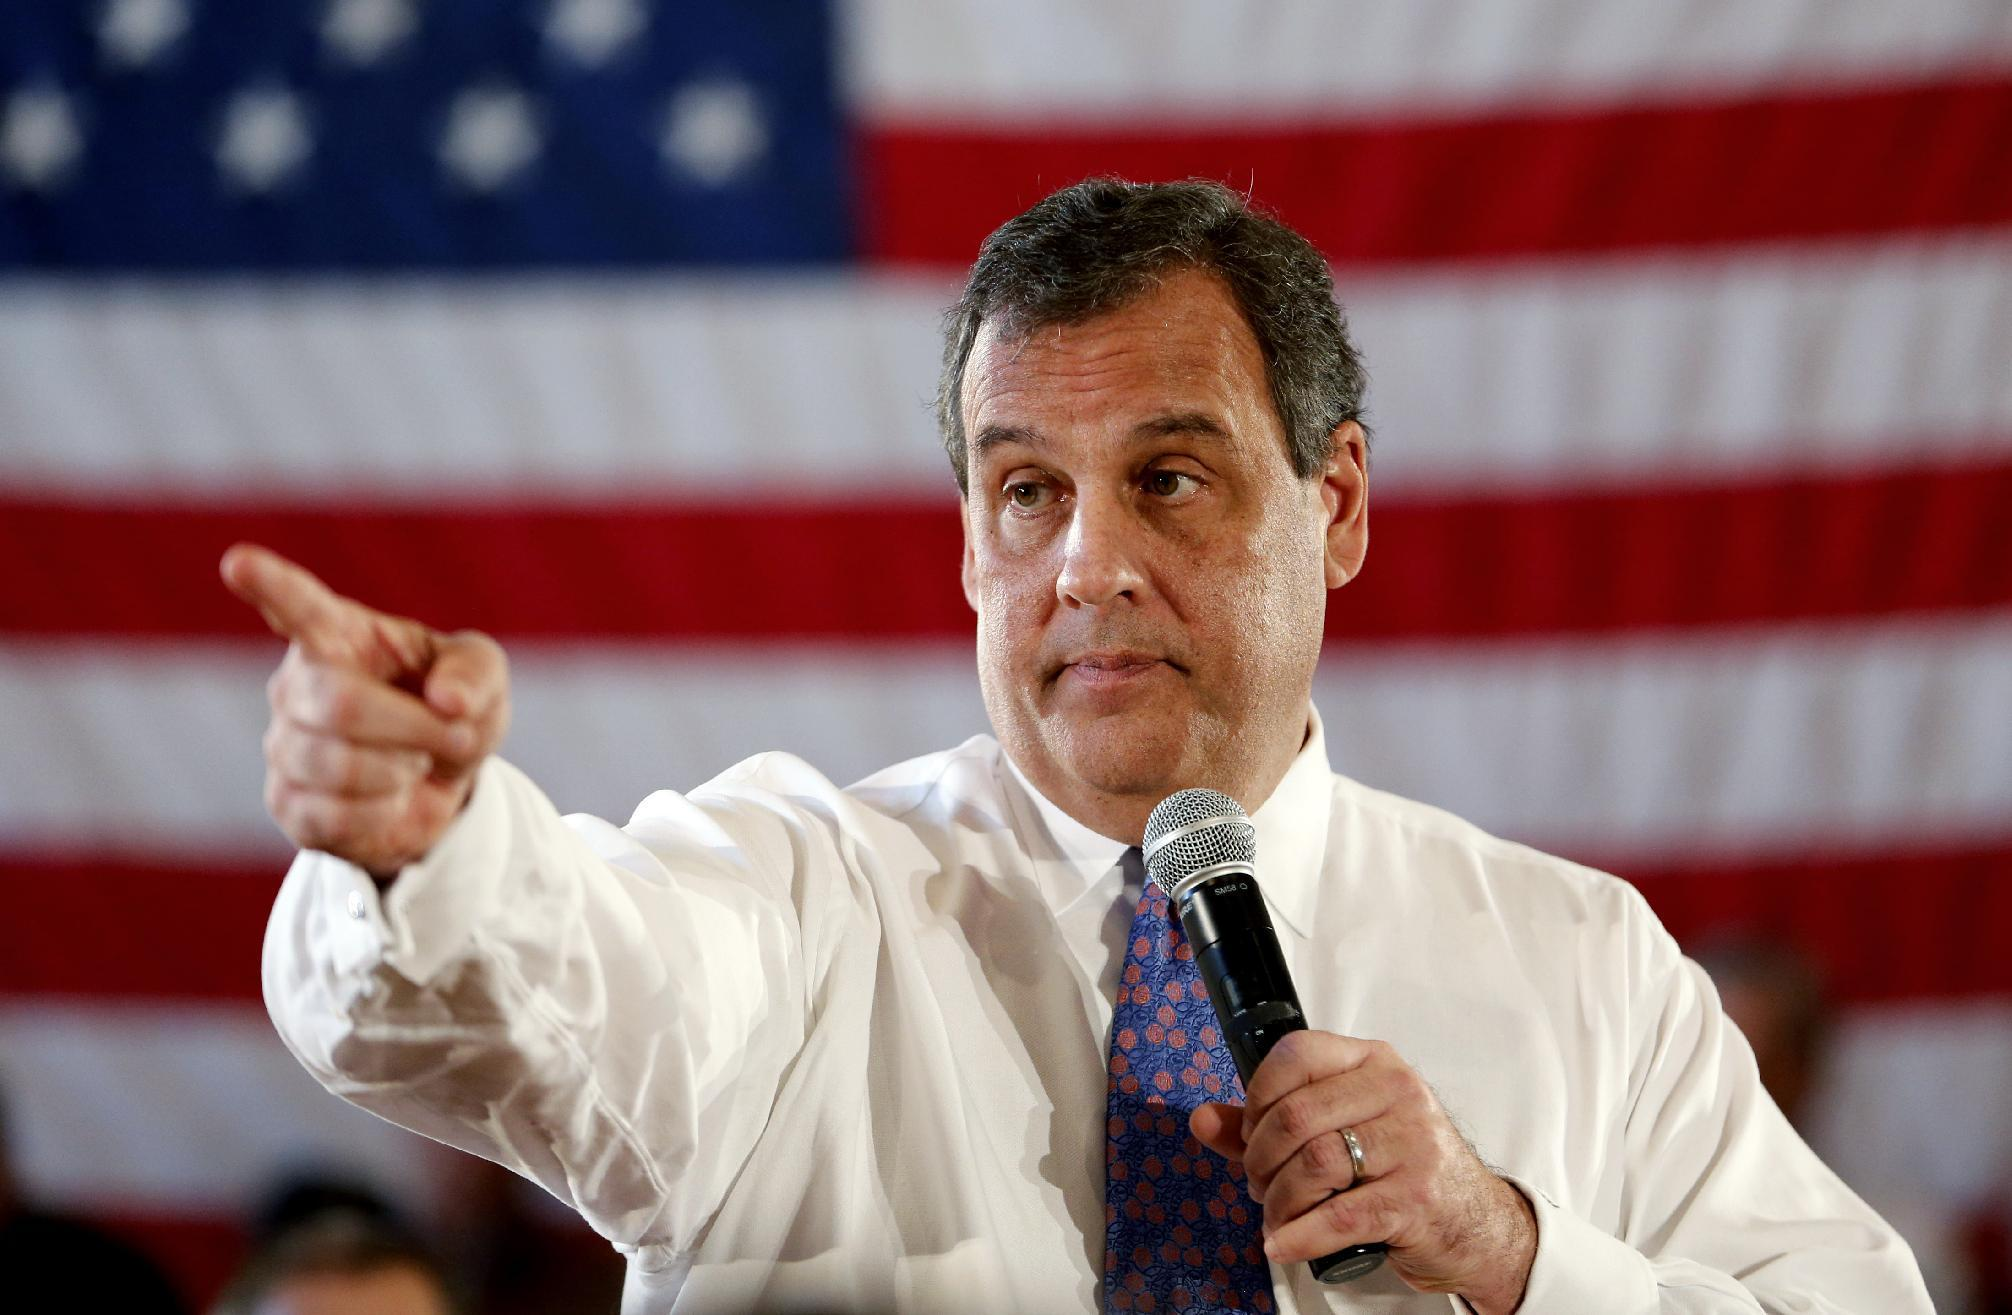 Christie spars with teacher at New Jersey town hall